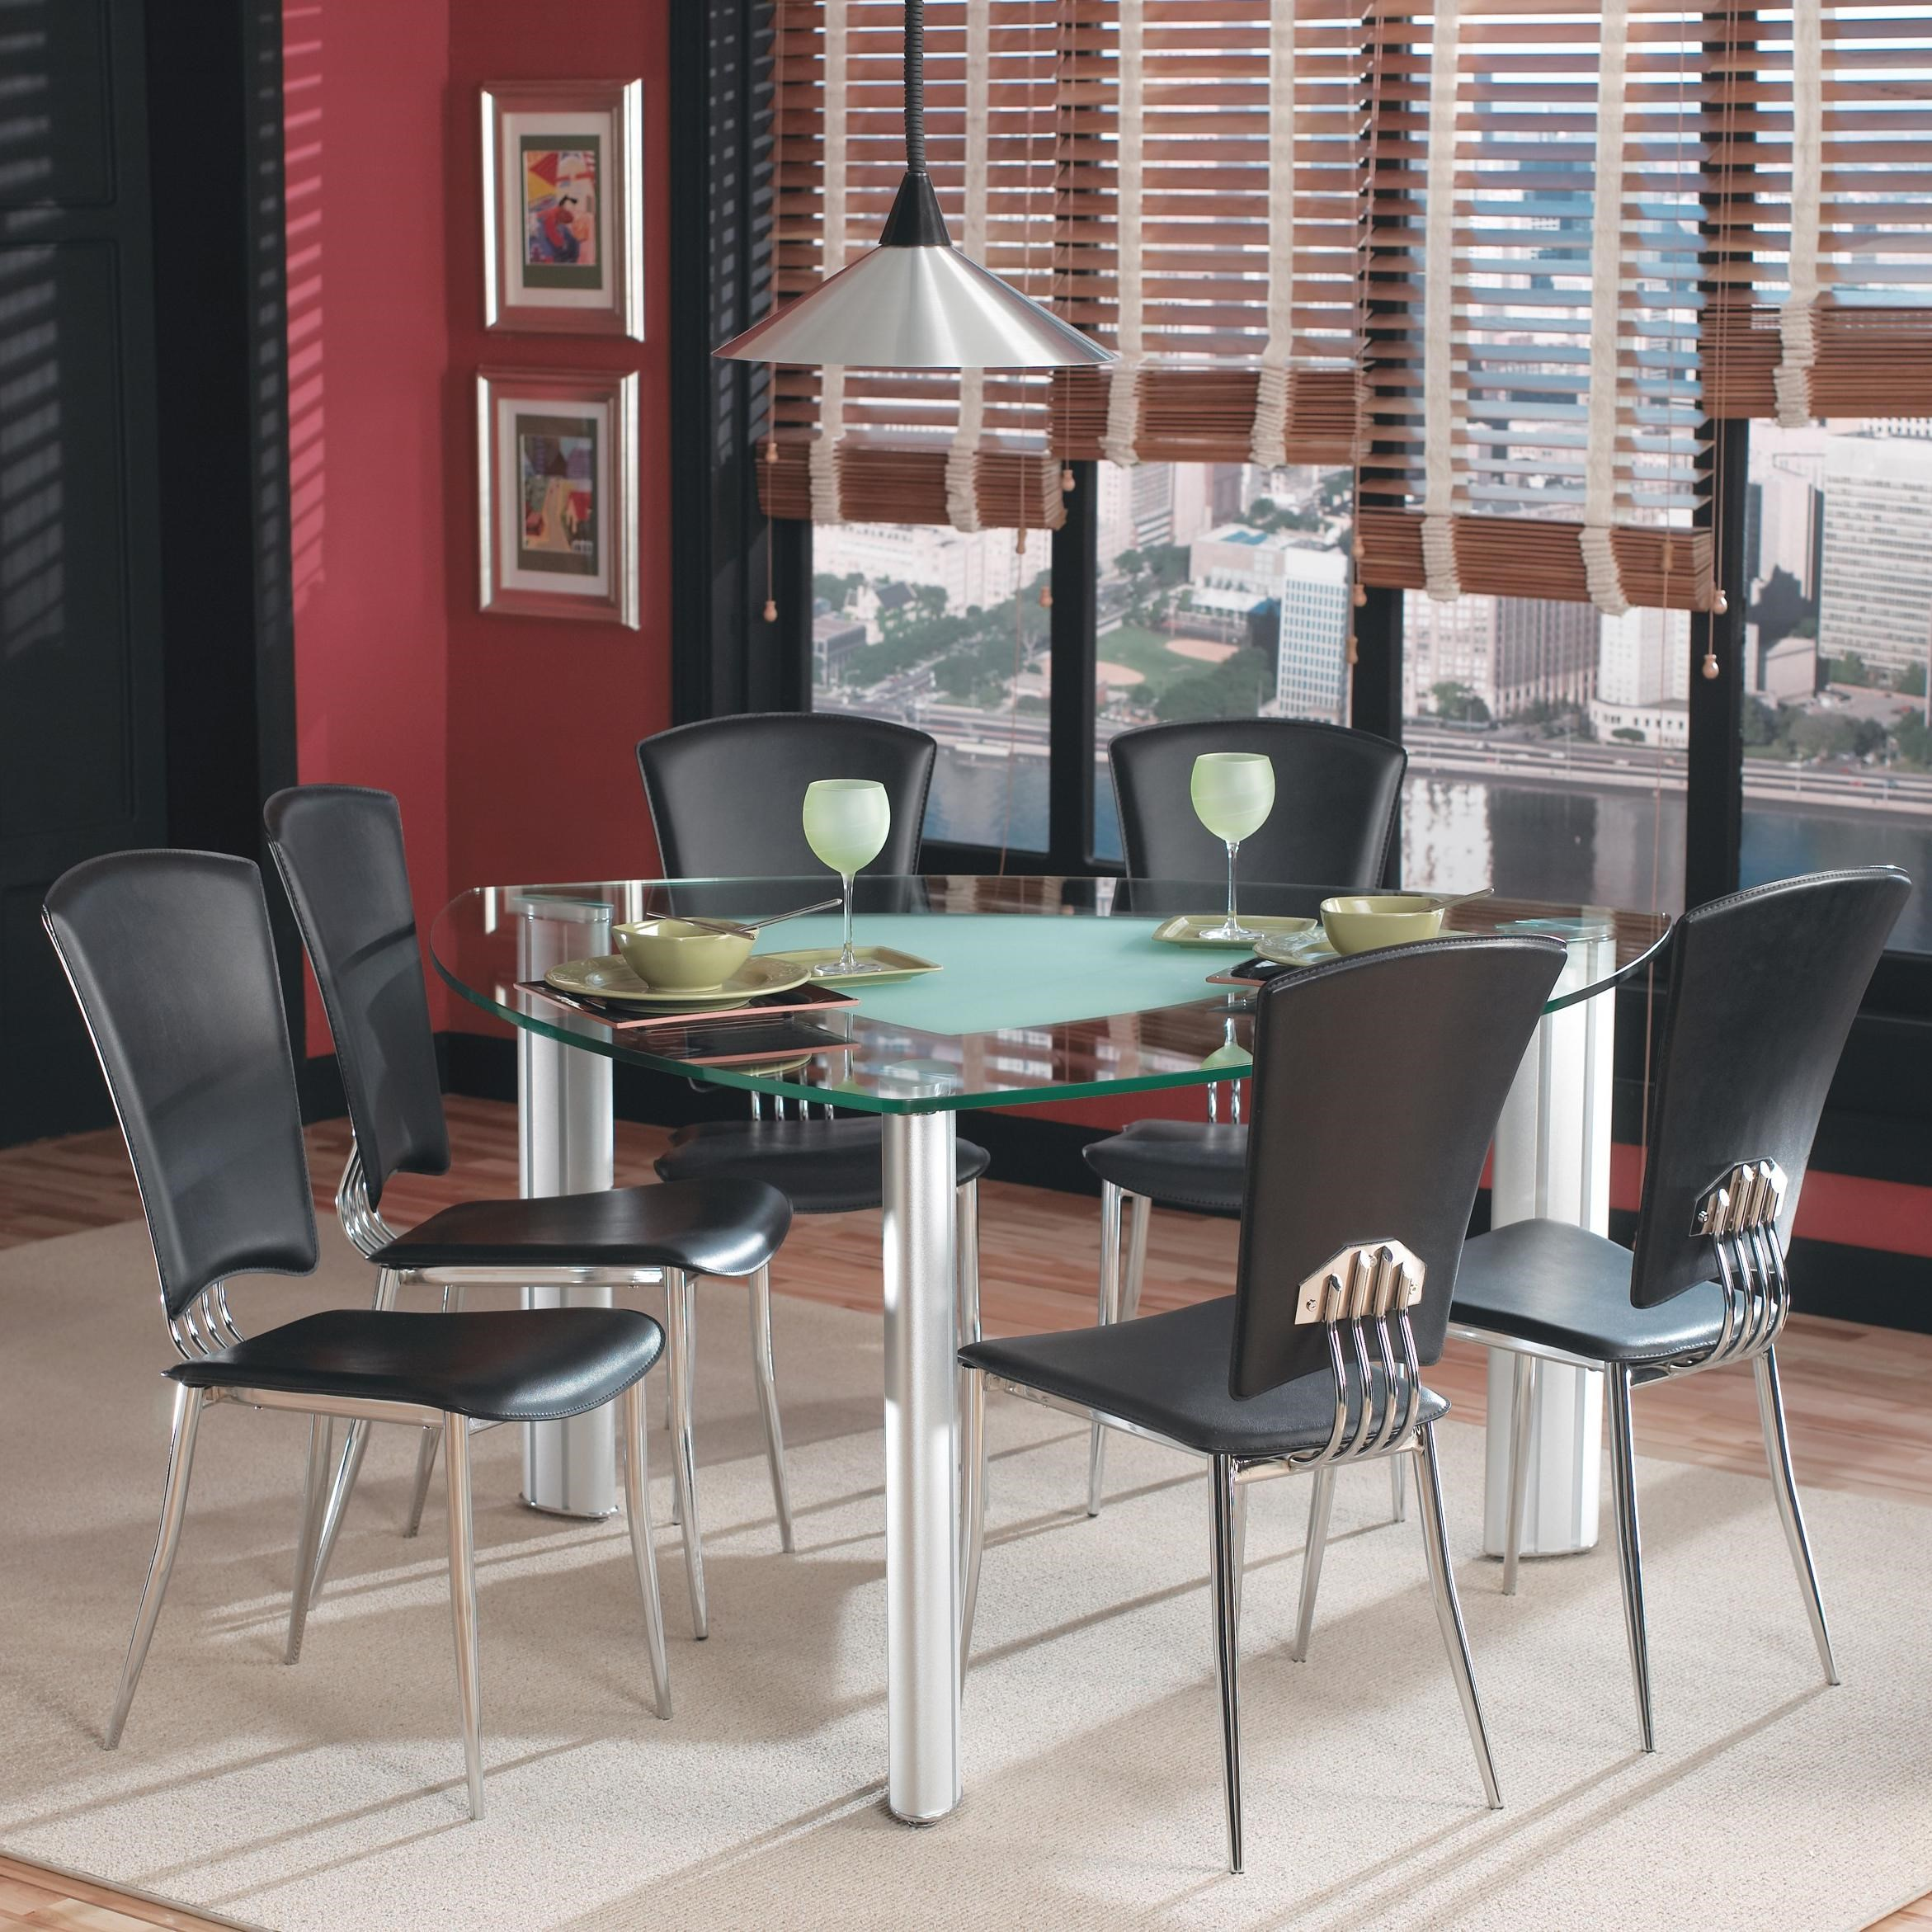 Chintaly Imports Tracy Leg Table W/ 6 Side Chairs   Hudsonu0027s Furniture    Dining 7 (or More) Piece Set